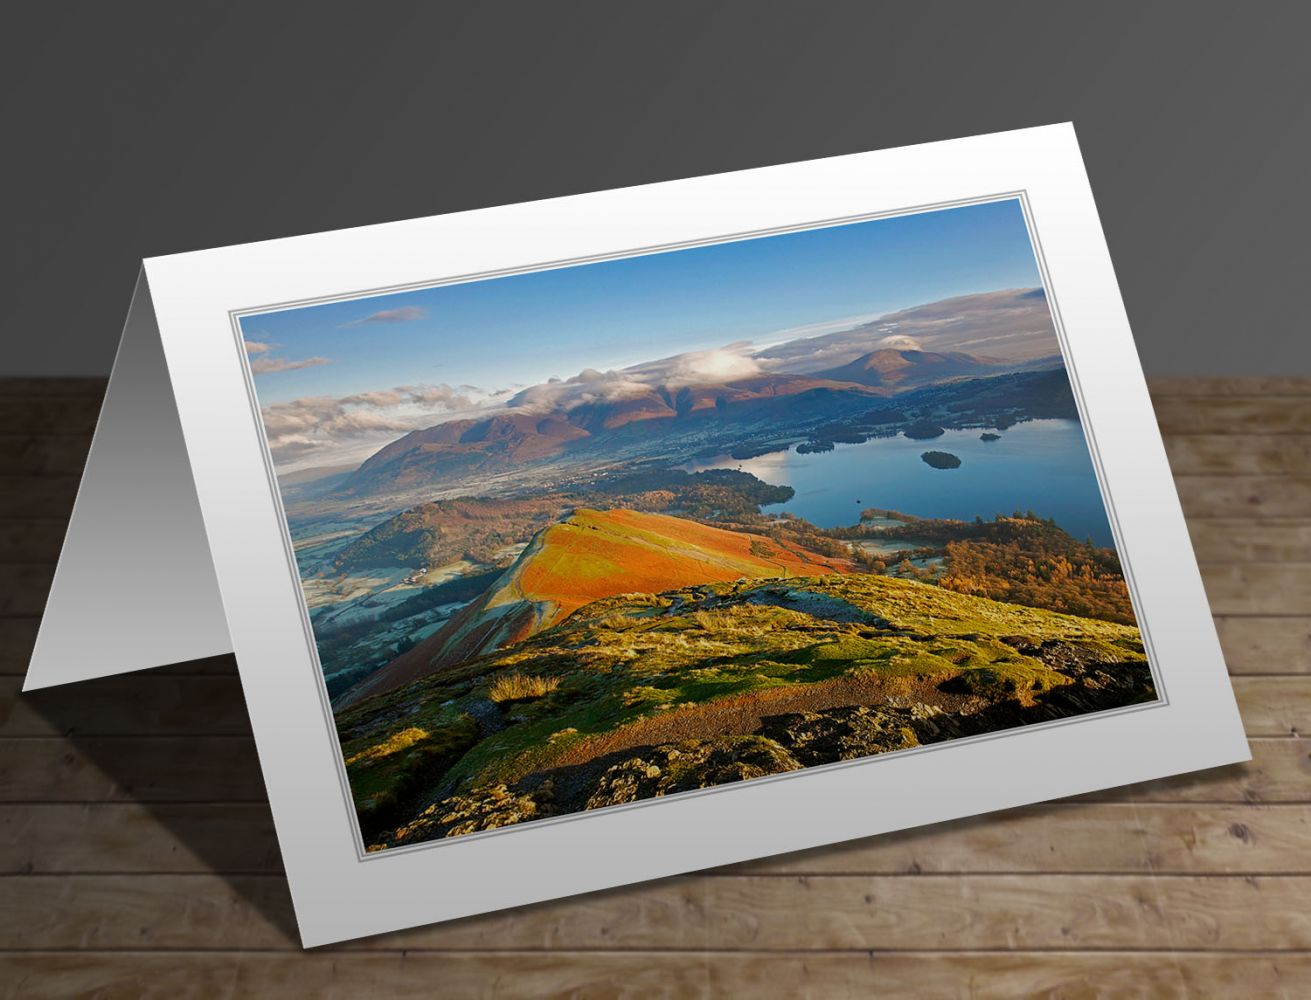 A greeting card containing the image Catbells bathed in morning light in the English Lake District by Martin Lawrence